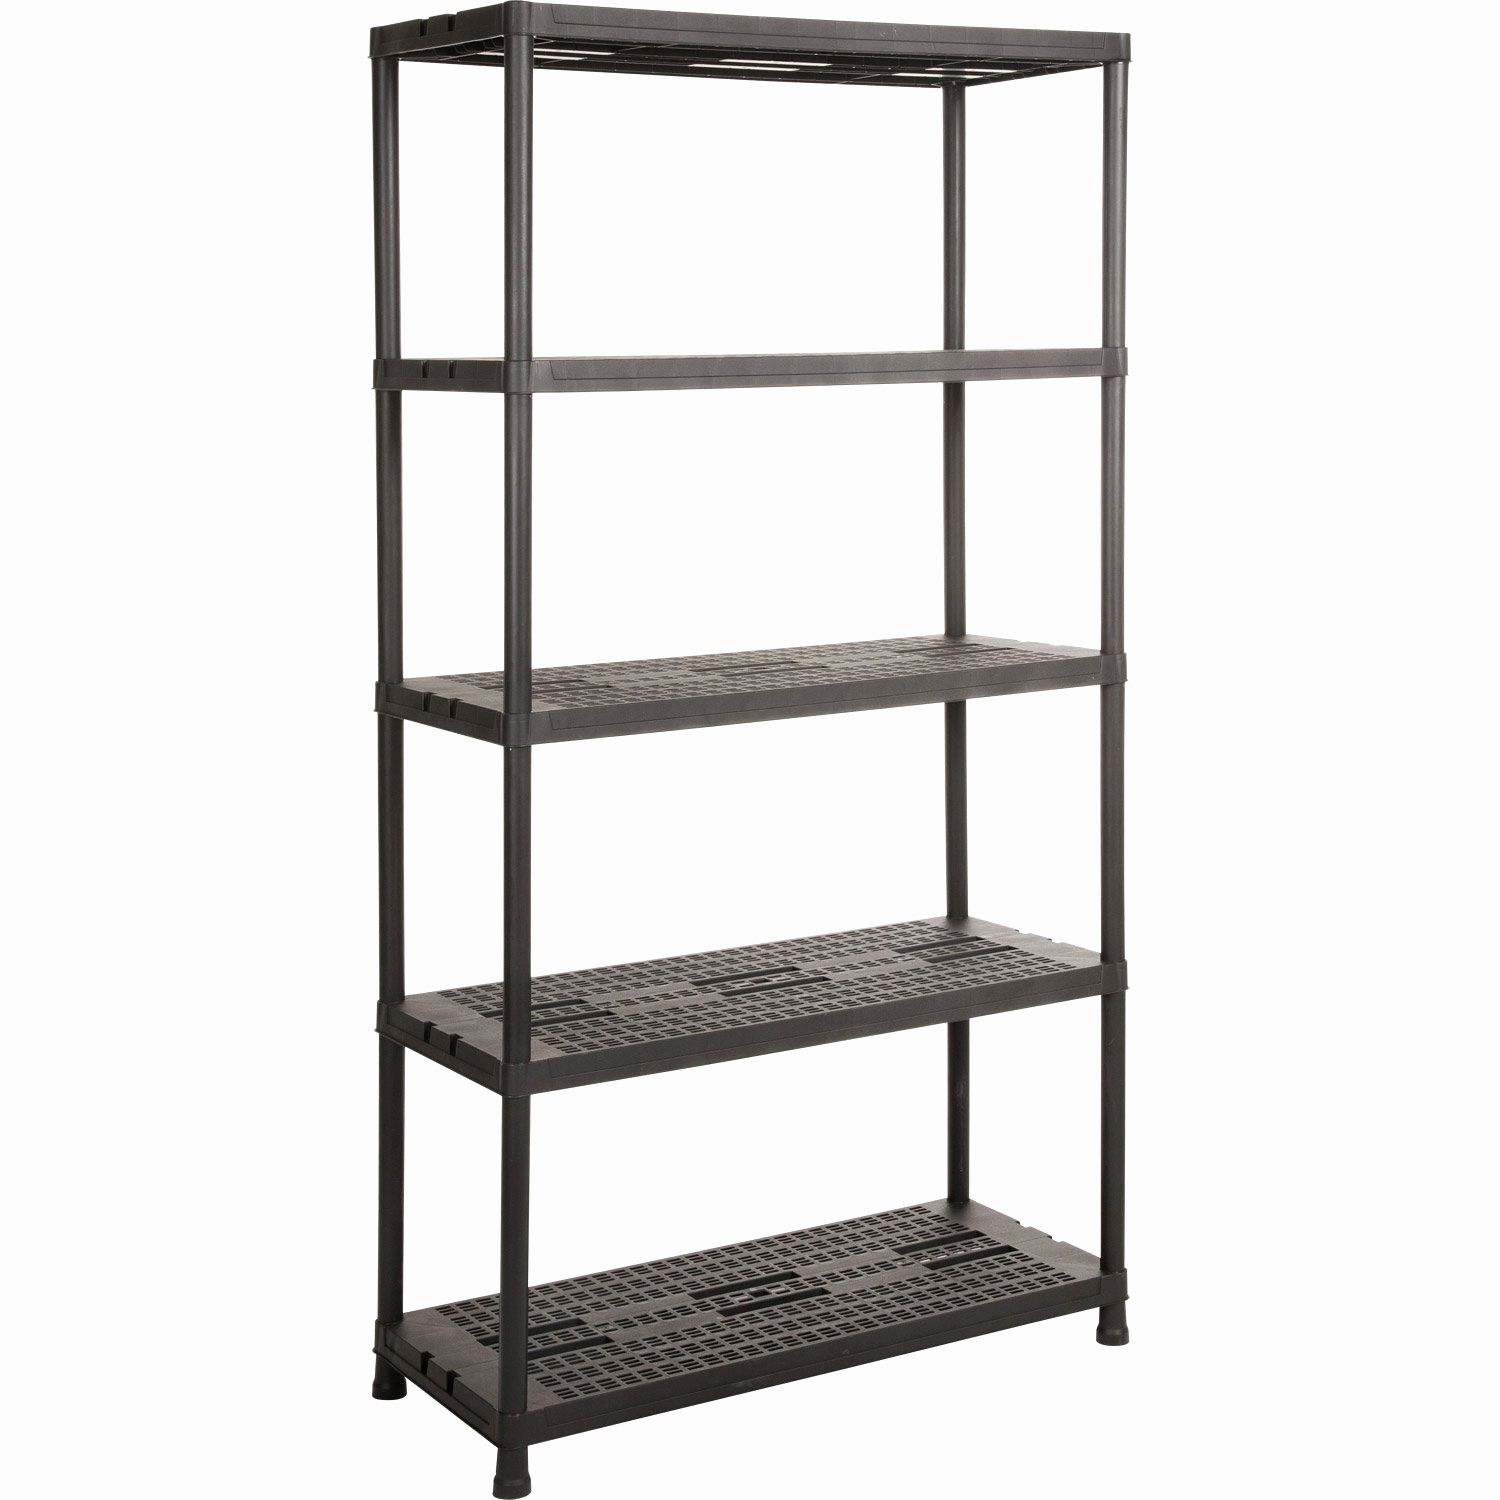 Inspirational Etagere Sur Mesure Leroy Merlin Shelves Stainless Steel Kitchen Steel Shelf